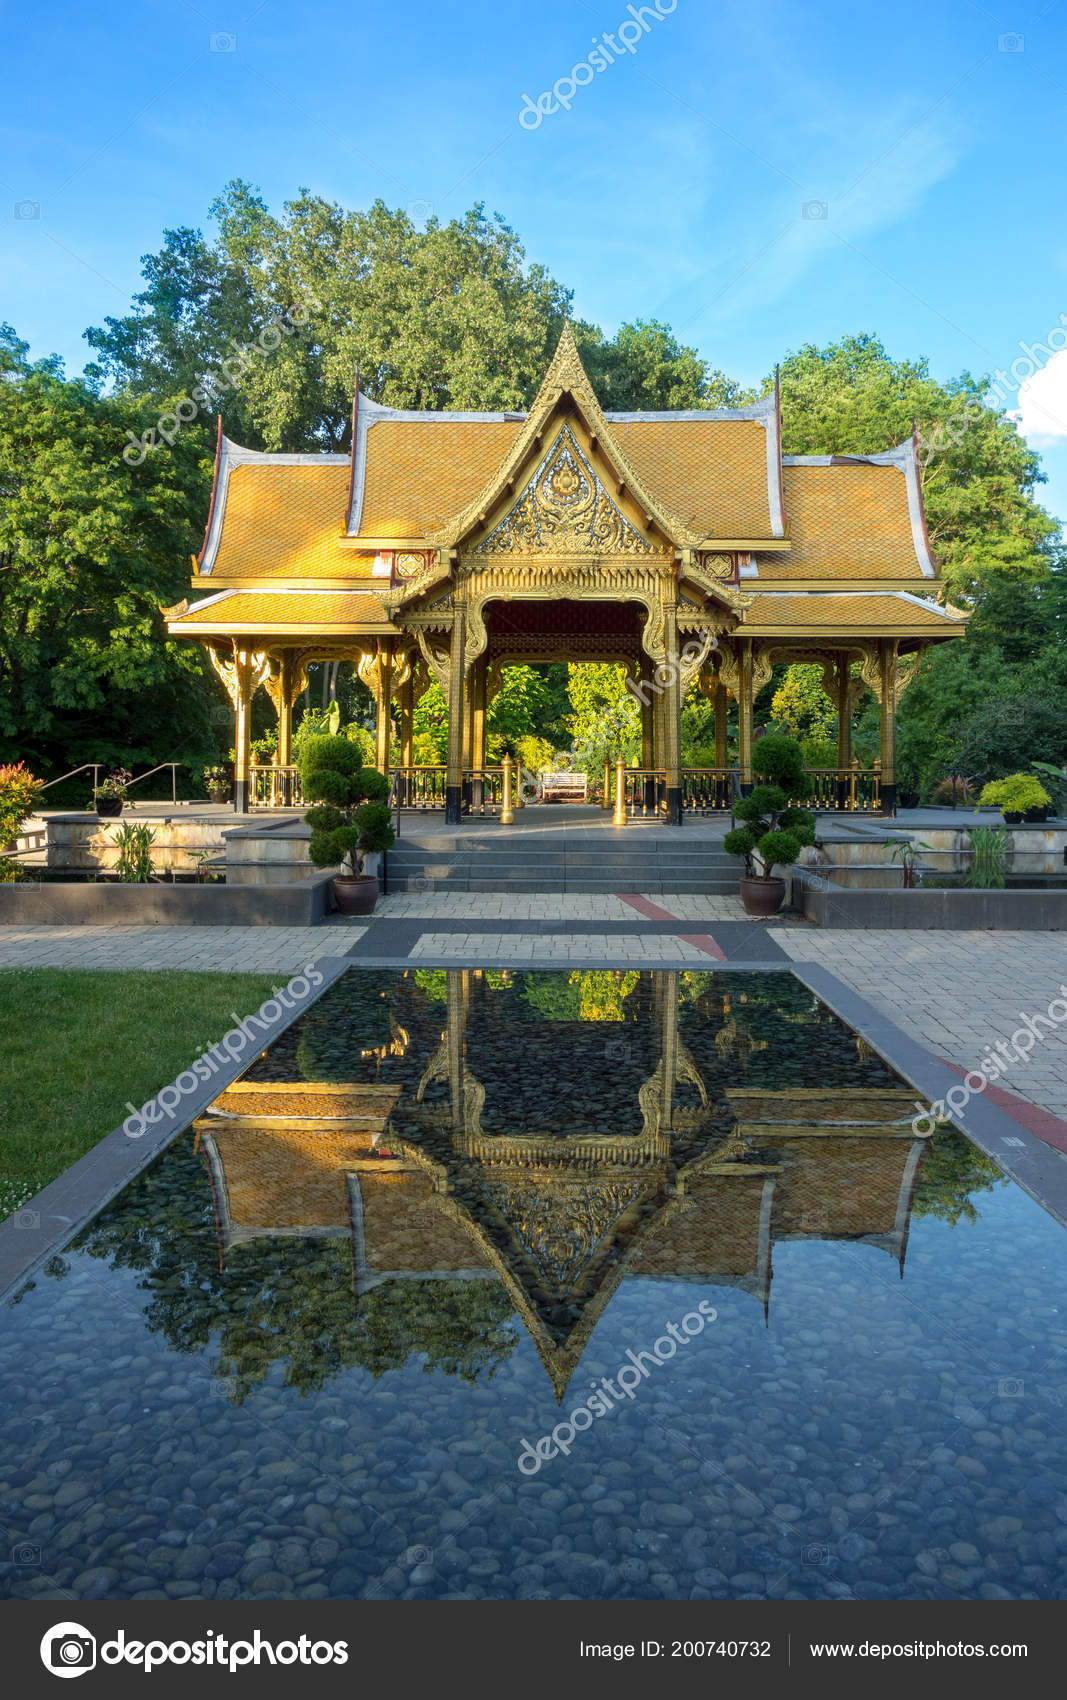 Fall Comes To Garden Of Thai Pavilion >> Thai Pavilion In Olbrich Botanical Gardens In Madison Wisconsin